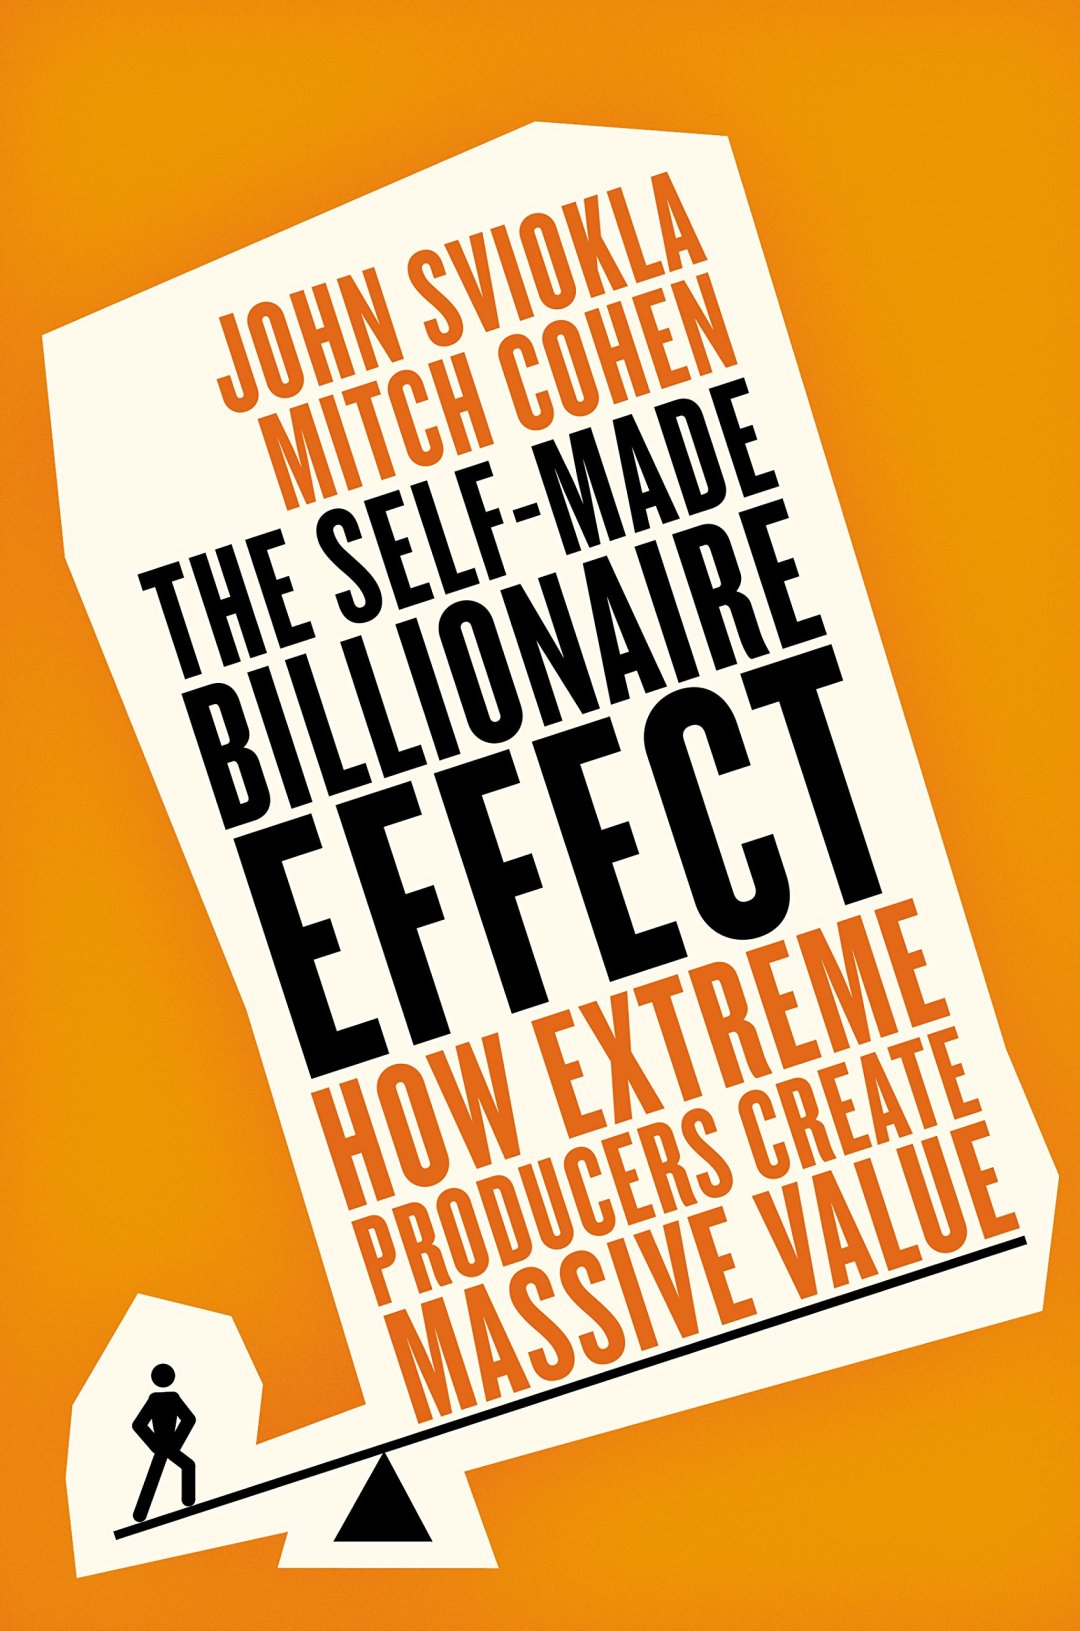 The Self-Made Billionaire Effect: How Extreme Producers Create Massive Value by John Sviokla & Mitch Cohen